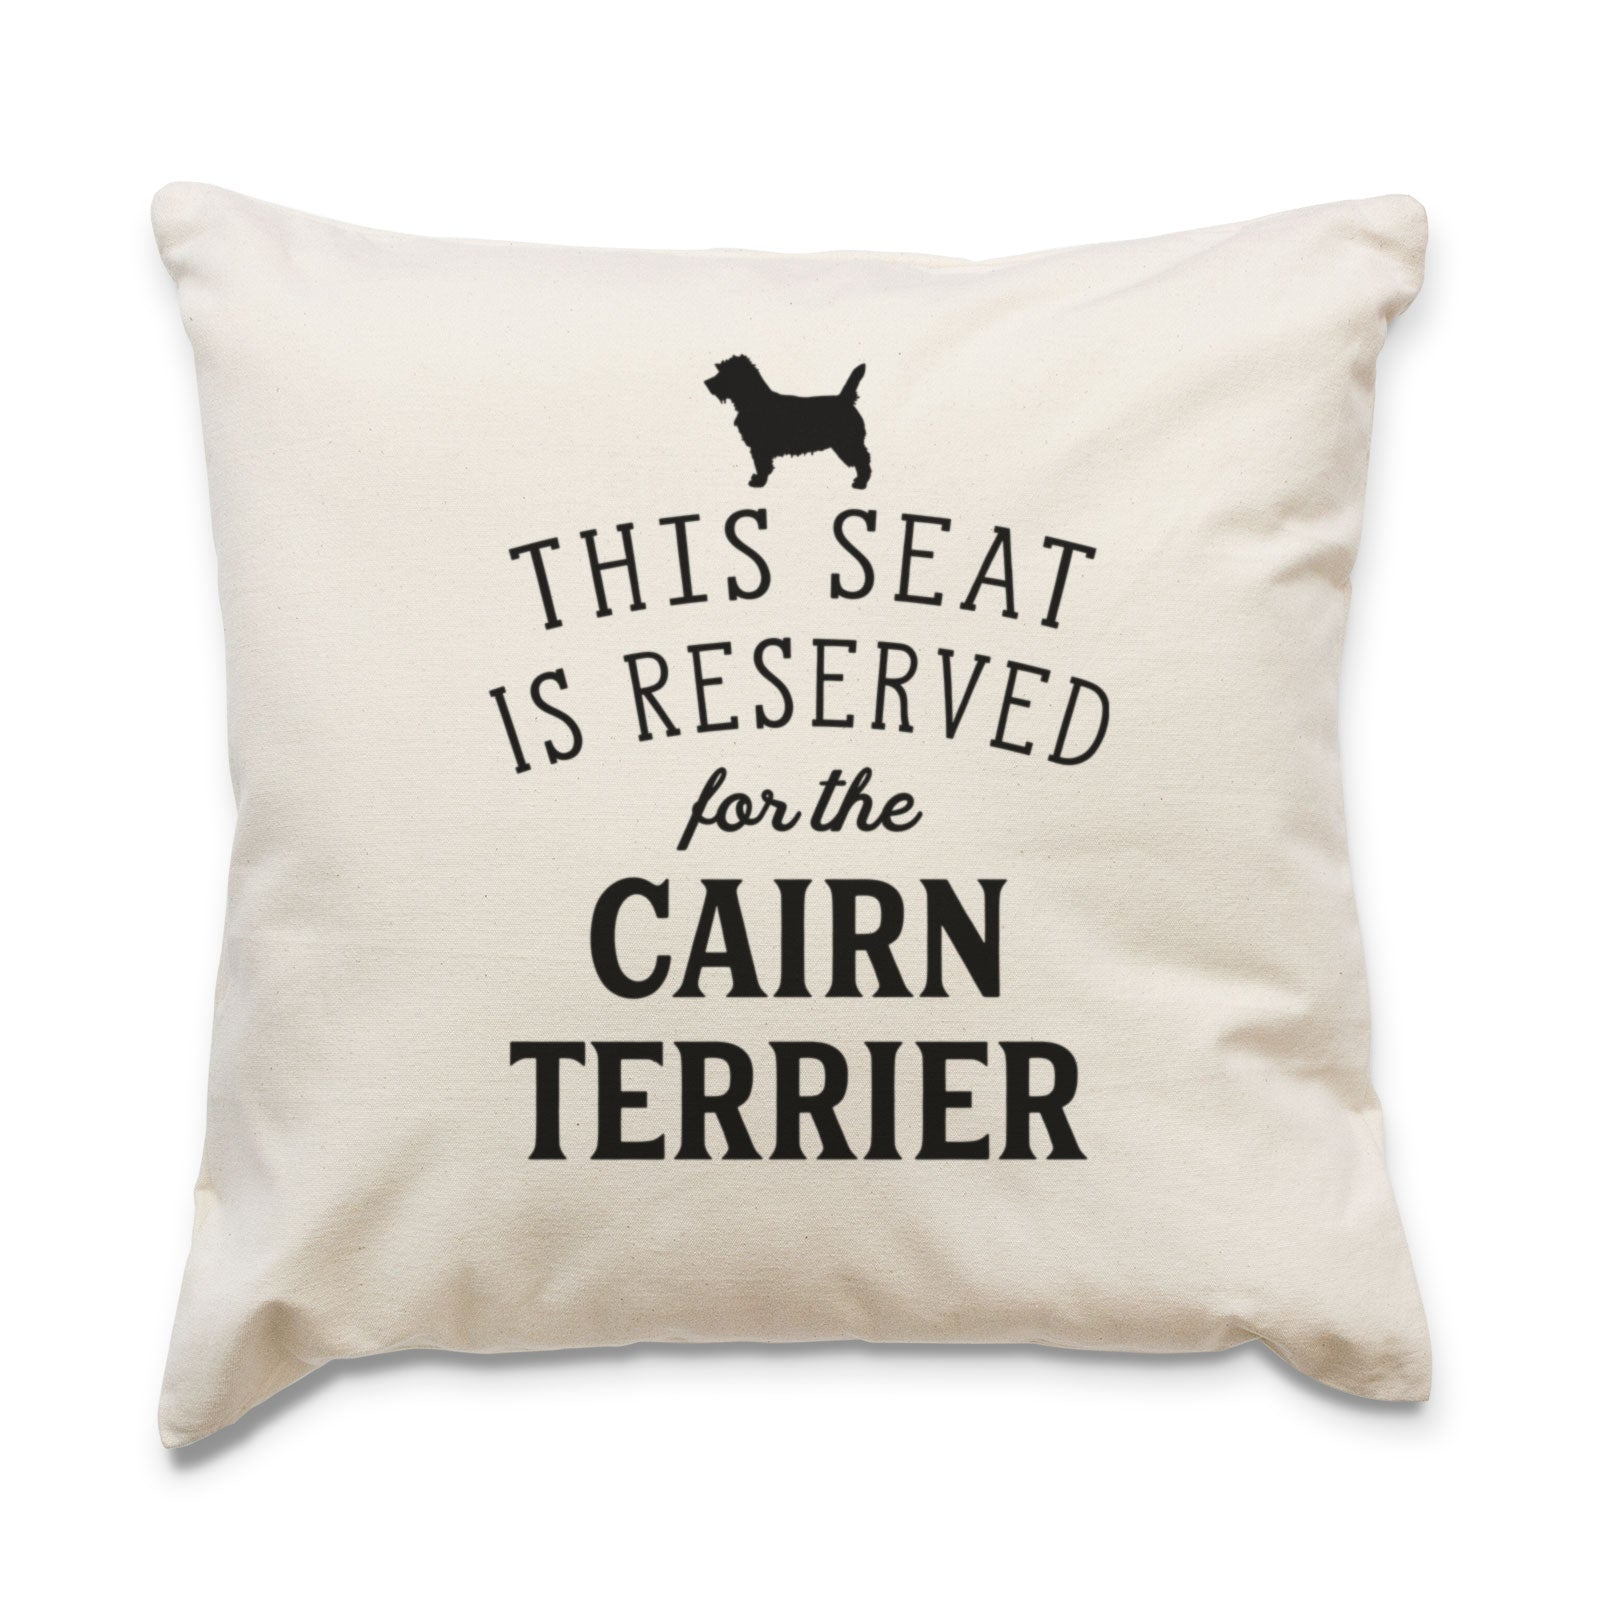 Reserved for the Cairn Terrier Cushion Cover